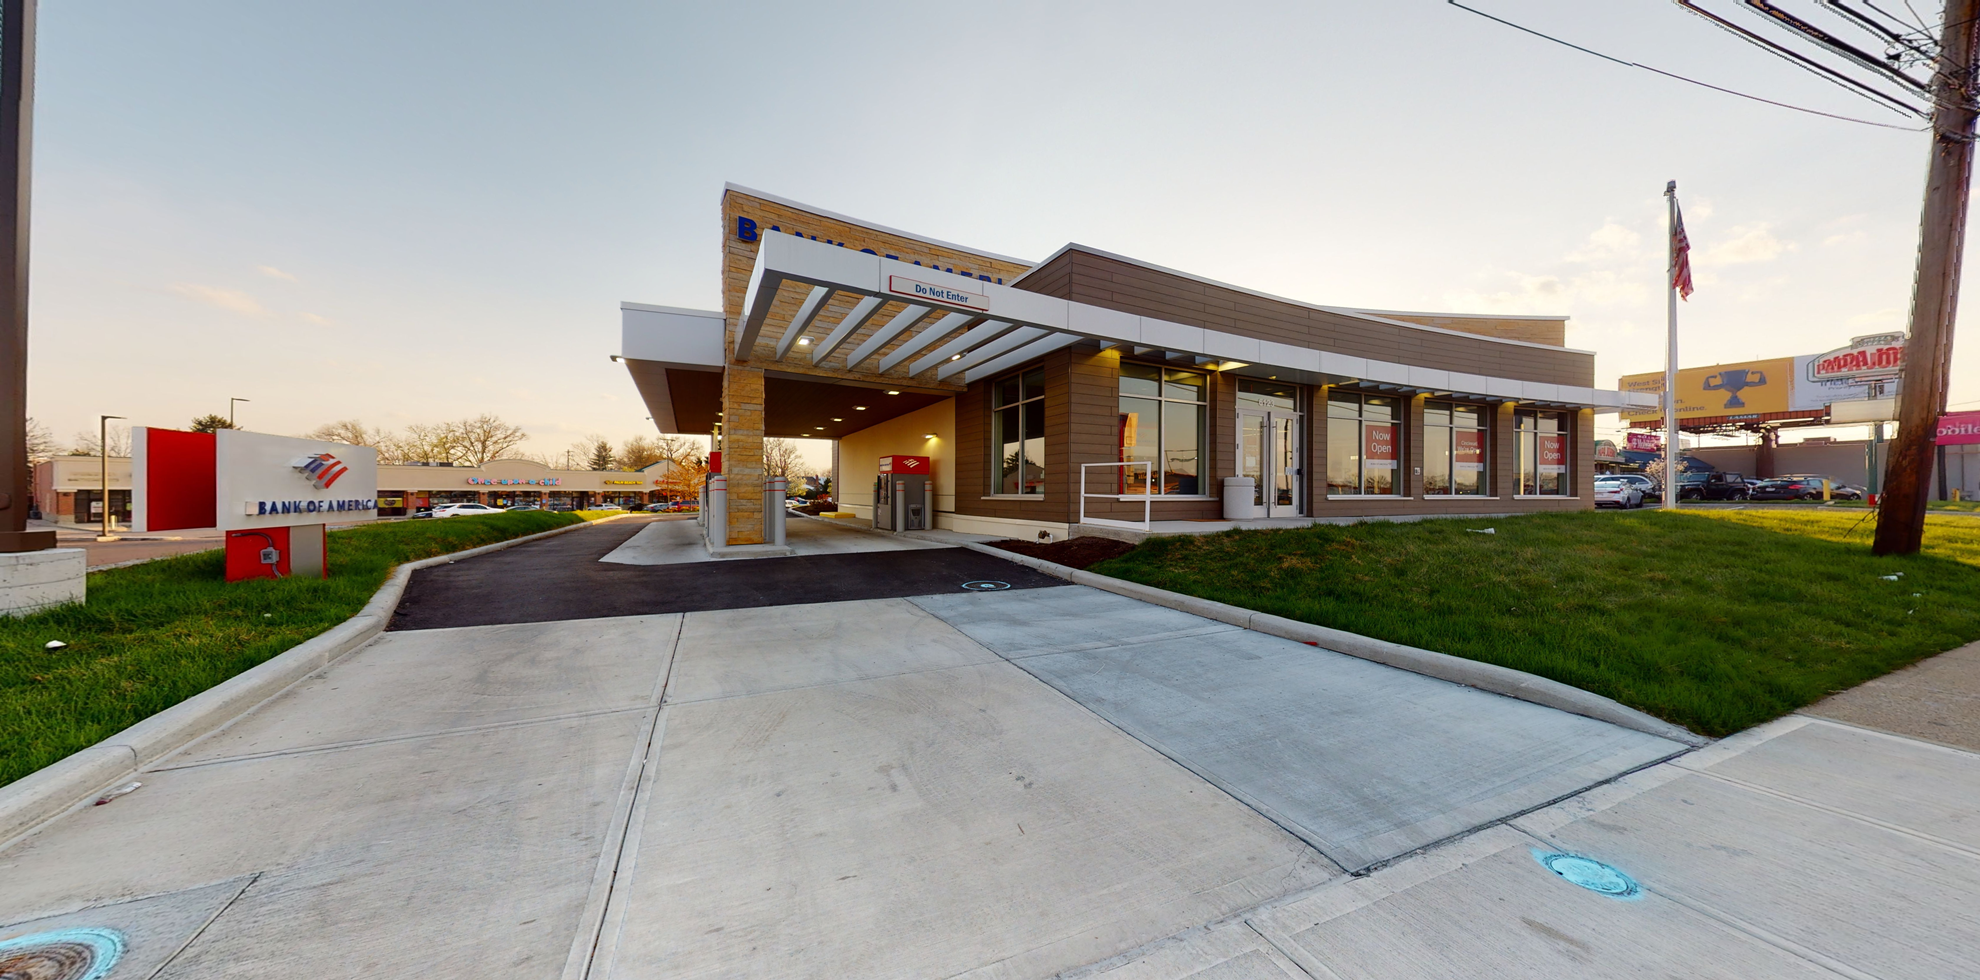 Bank of America financial center with drive-thru ATM | 6123 Glenway Ave, Cincinnati, OH 45211